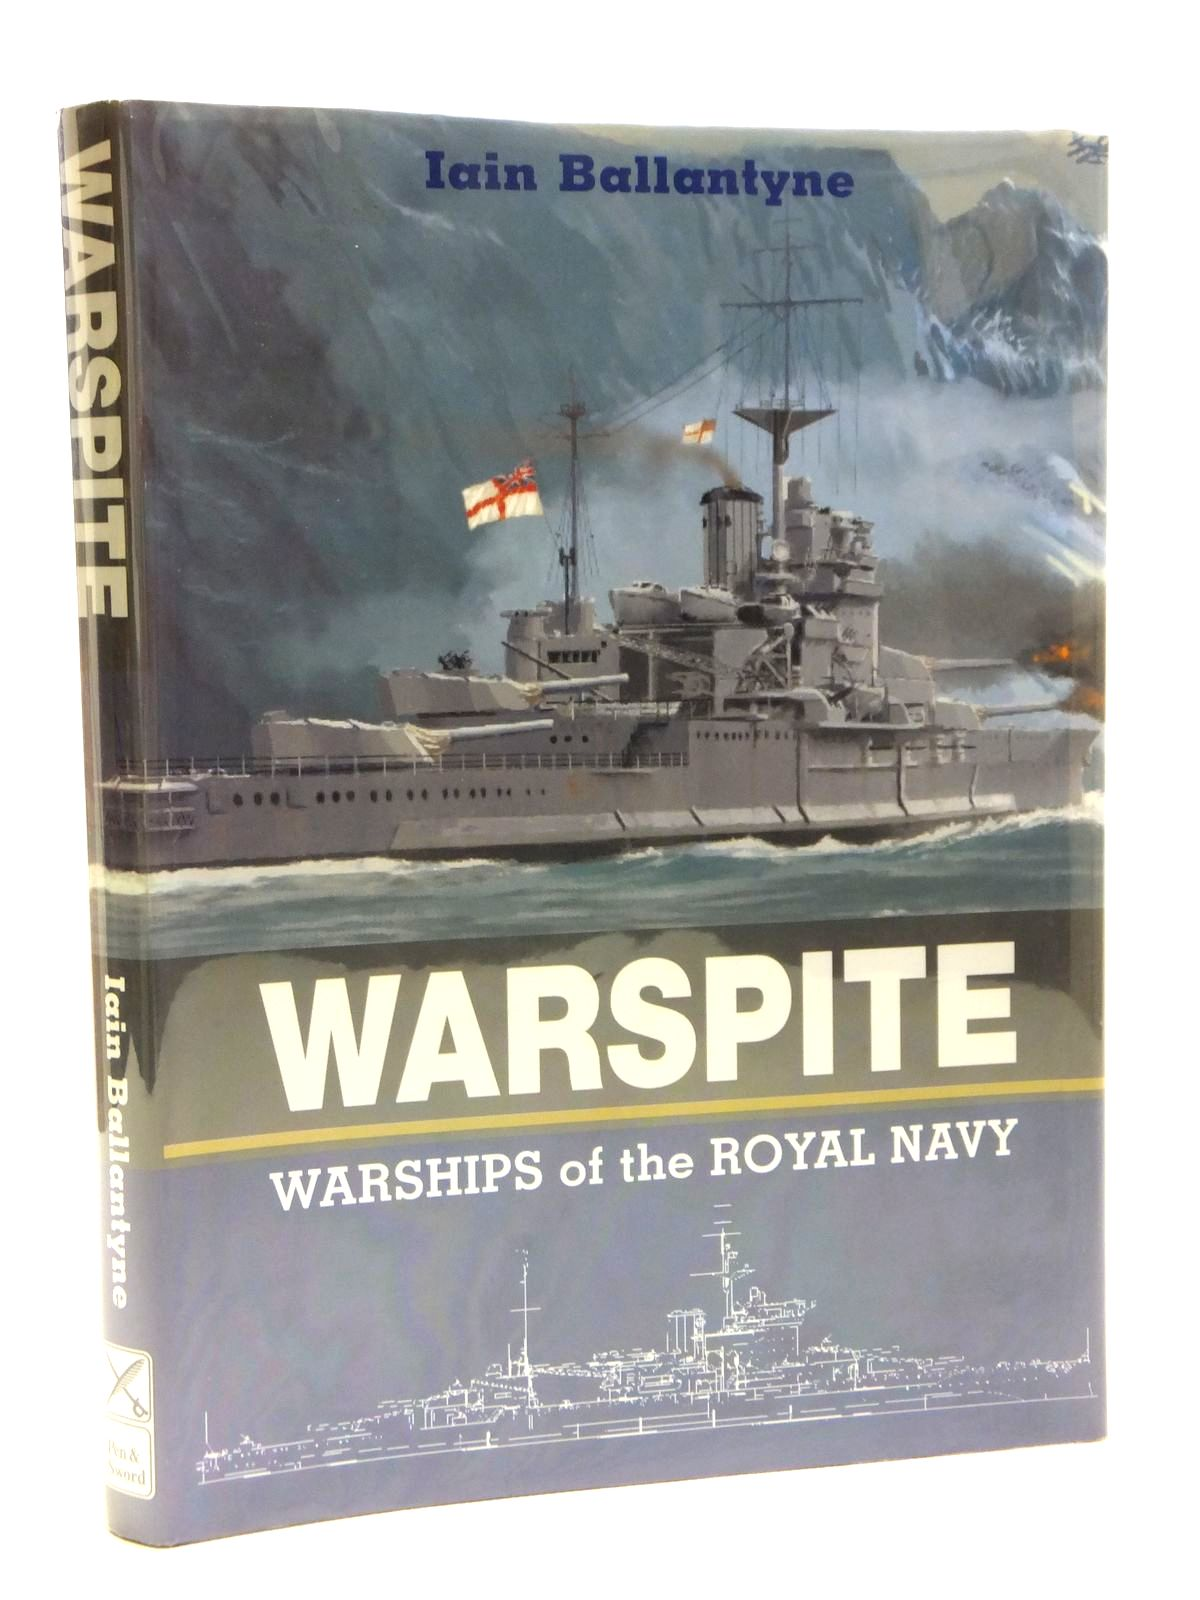 Photo of WARSPITE WARSHIPS OF THE ROYAL NAVY written by Ballantyne, Iain illustrated by Andrews, Dennis C. published by Leo Cooper (STOCK CODE: 1607983)  for sale by Stella & Rose's Books